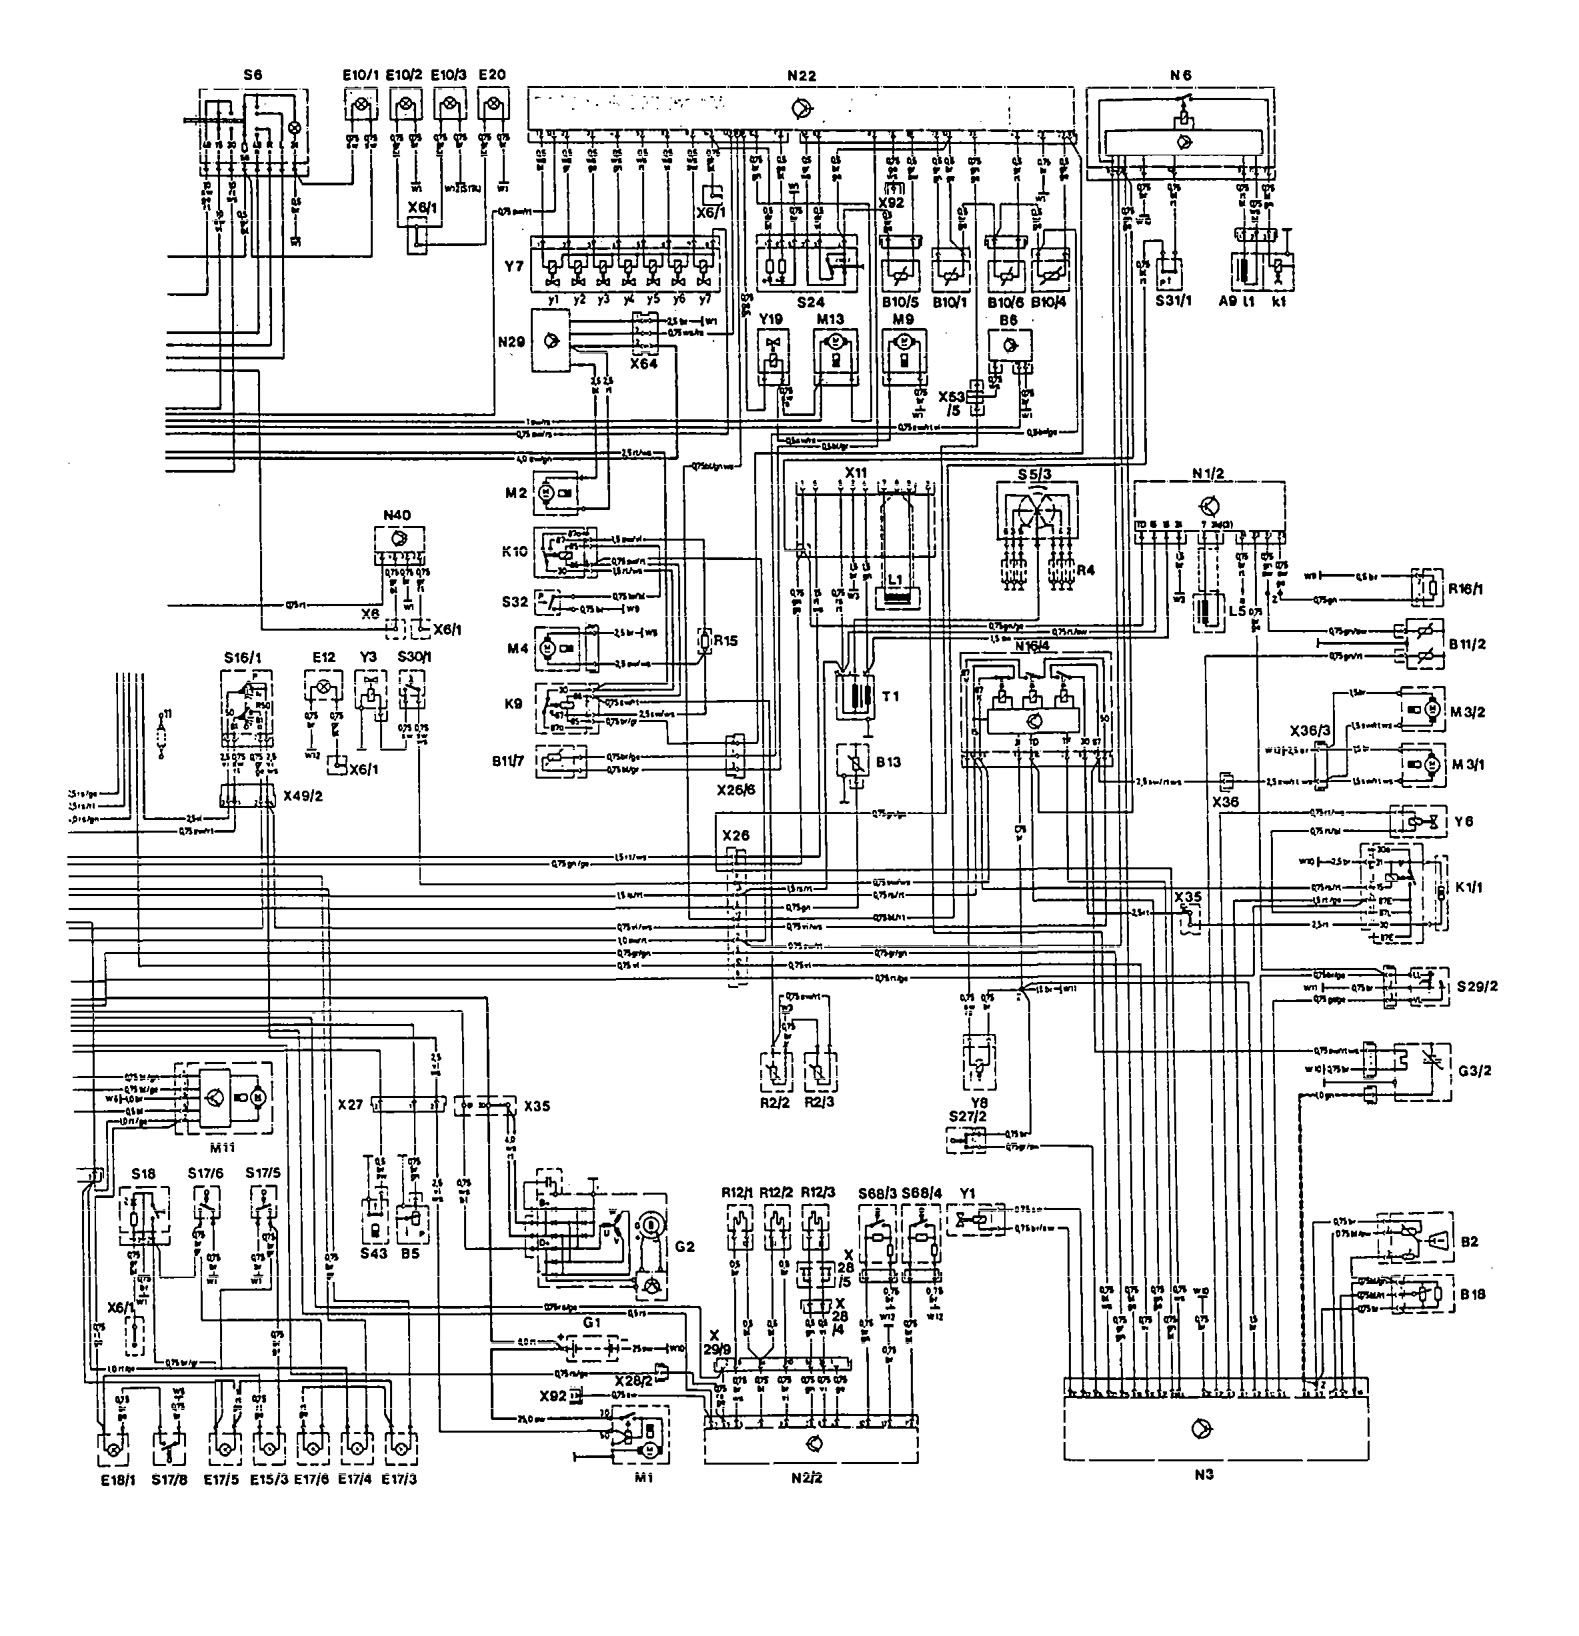 Mercedes-Benz 300E (1992) - wiring diagrams - igniition - CARKNOWLEDGE